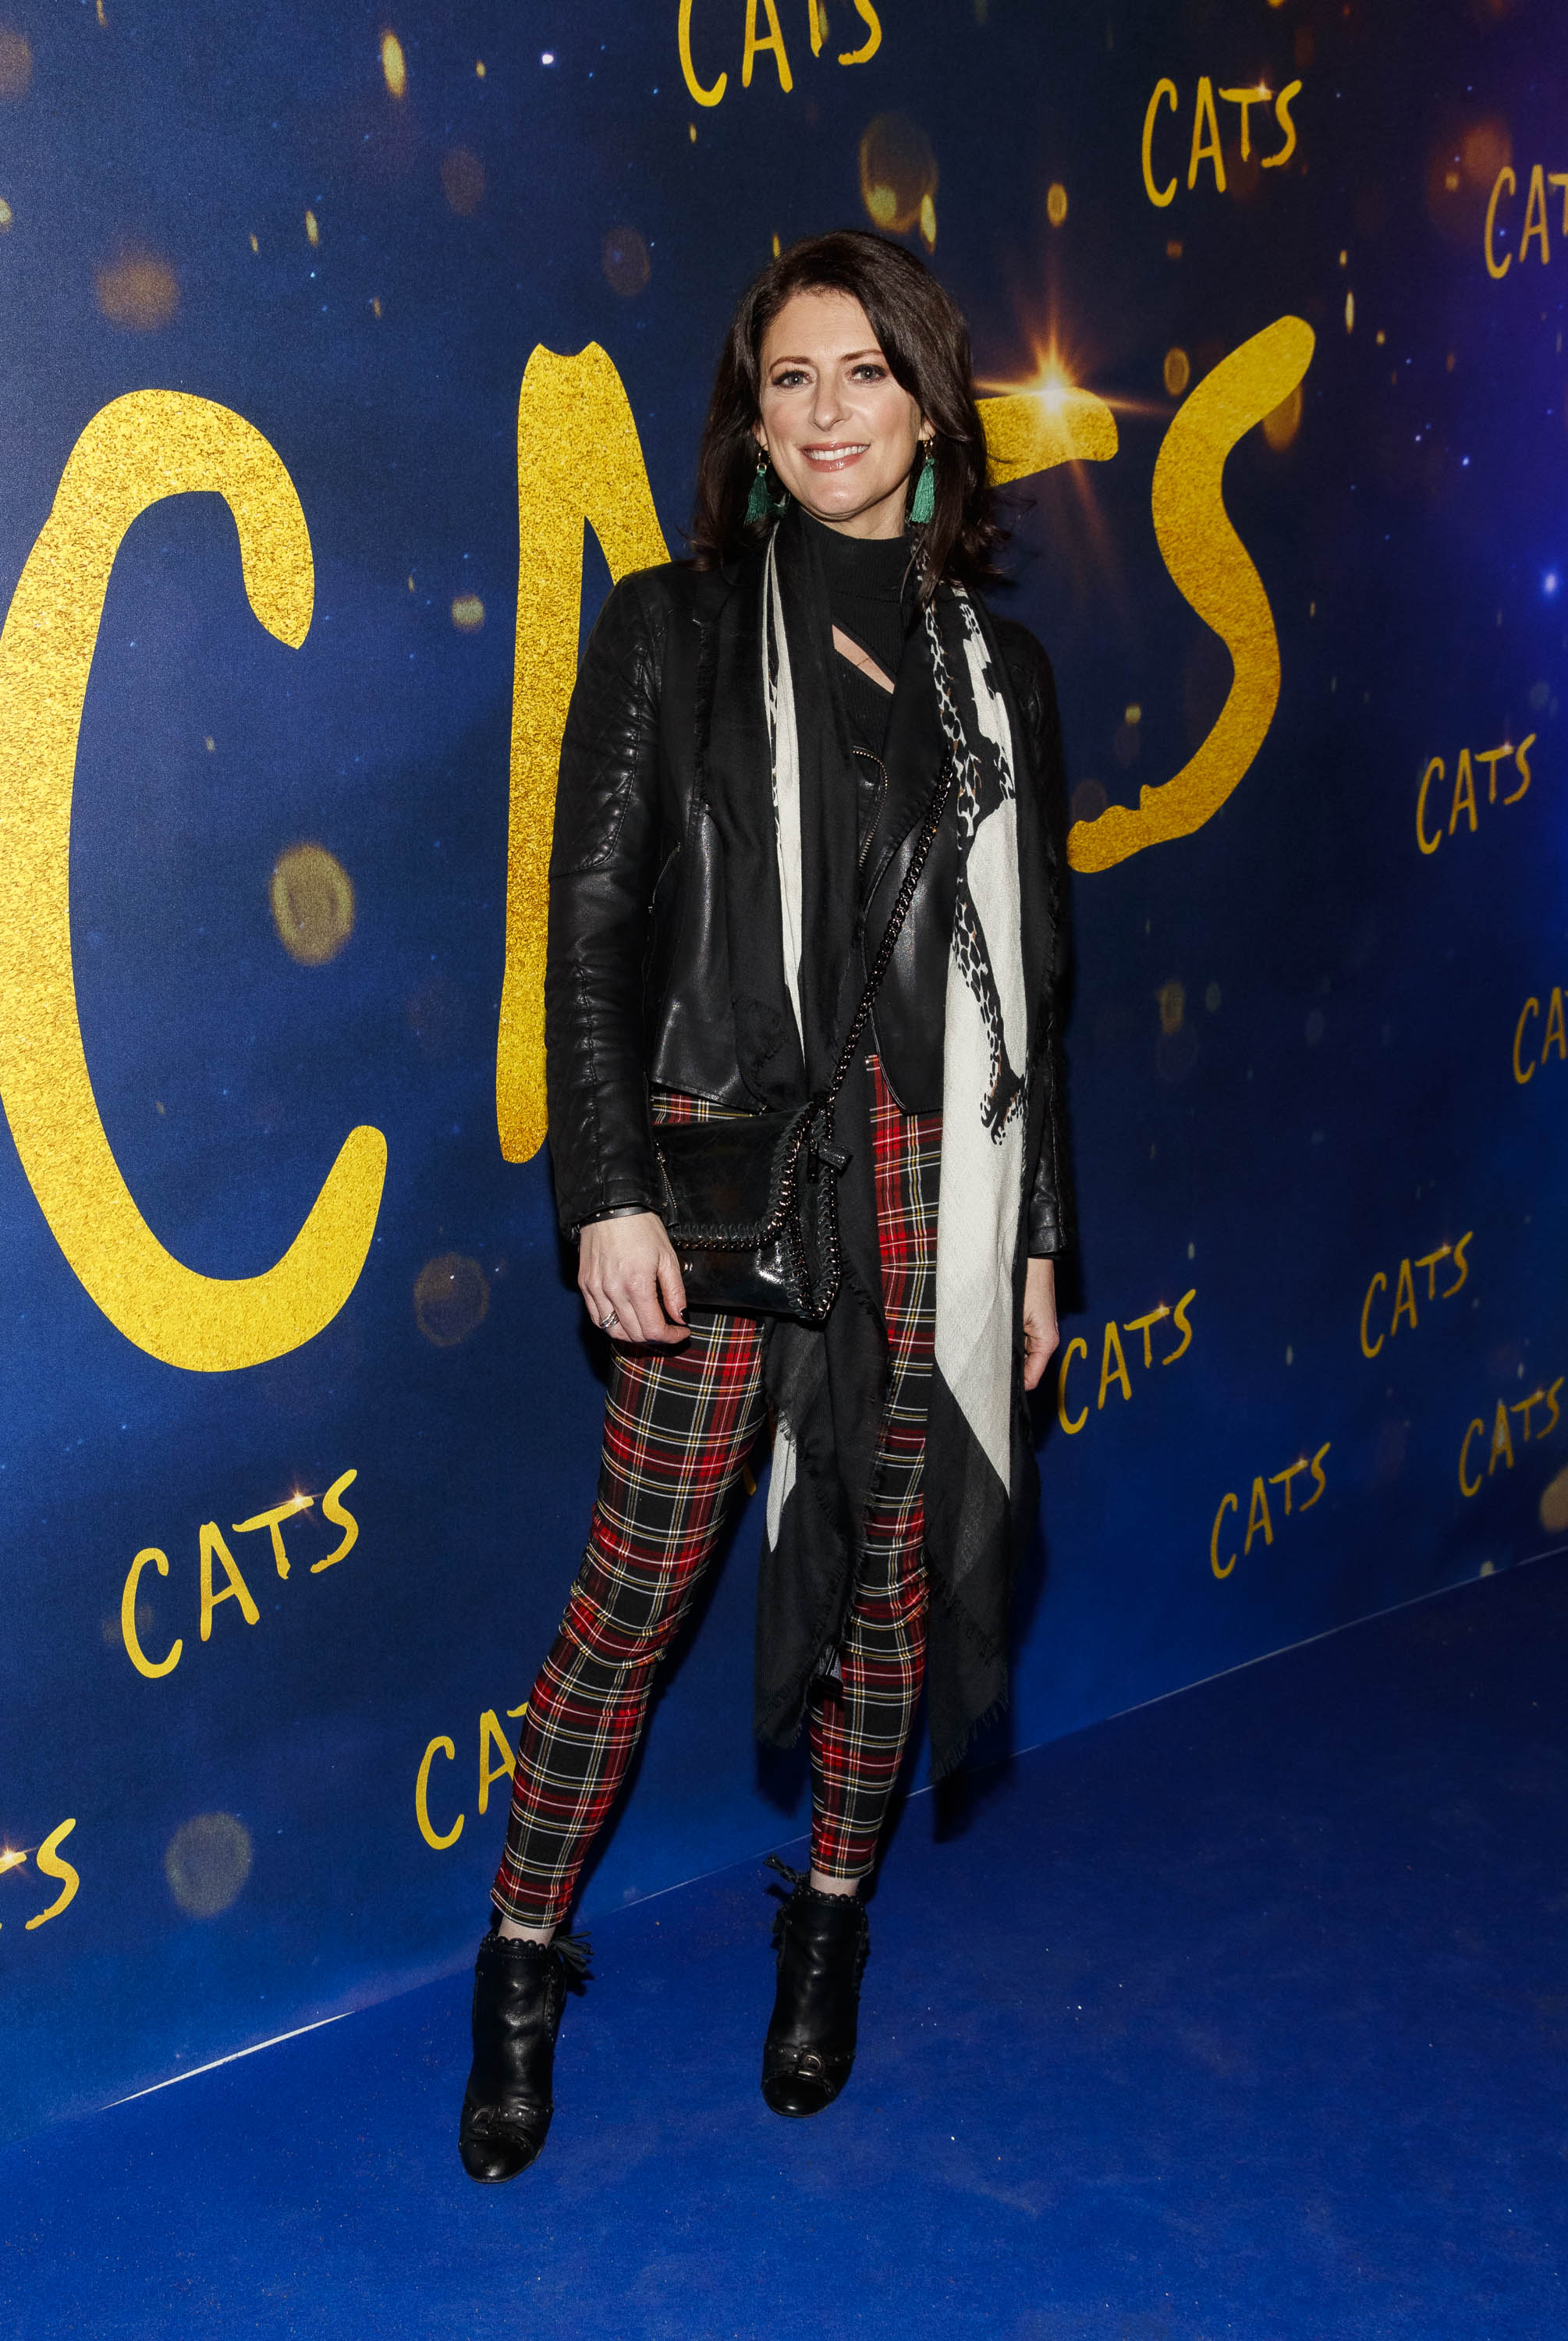 Sinead O Carroll pictured at the Irish premiere screening of 'Cats' at The Stella Theatre, Rathmines. Picture: Andres Poveda